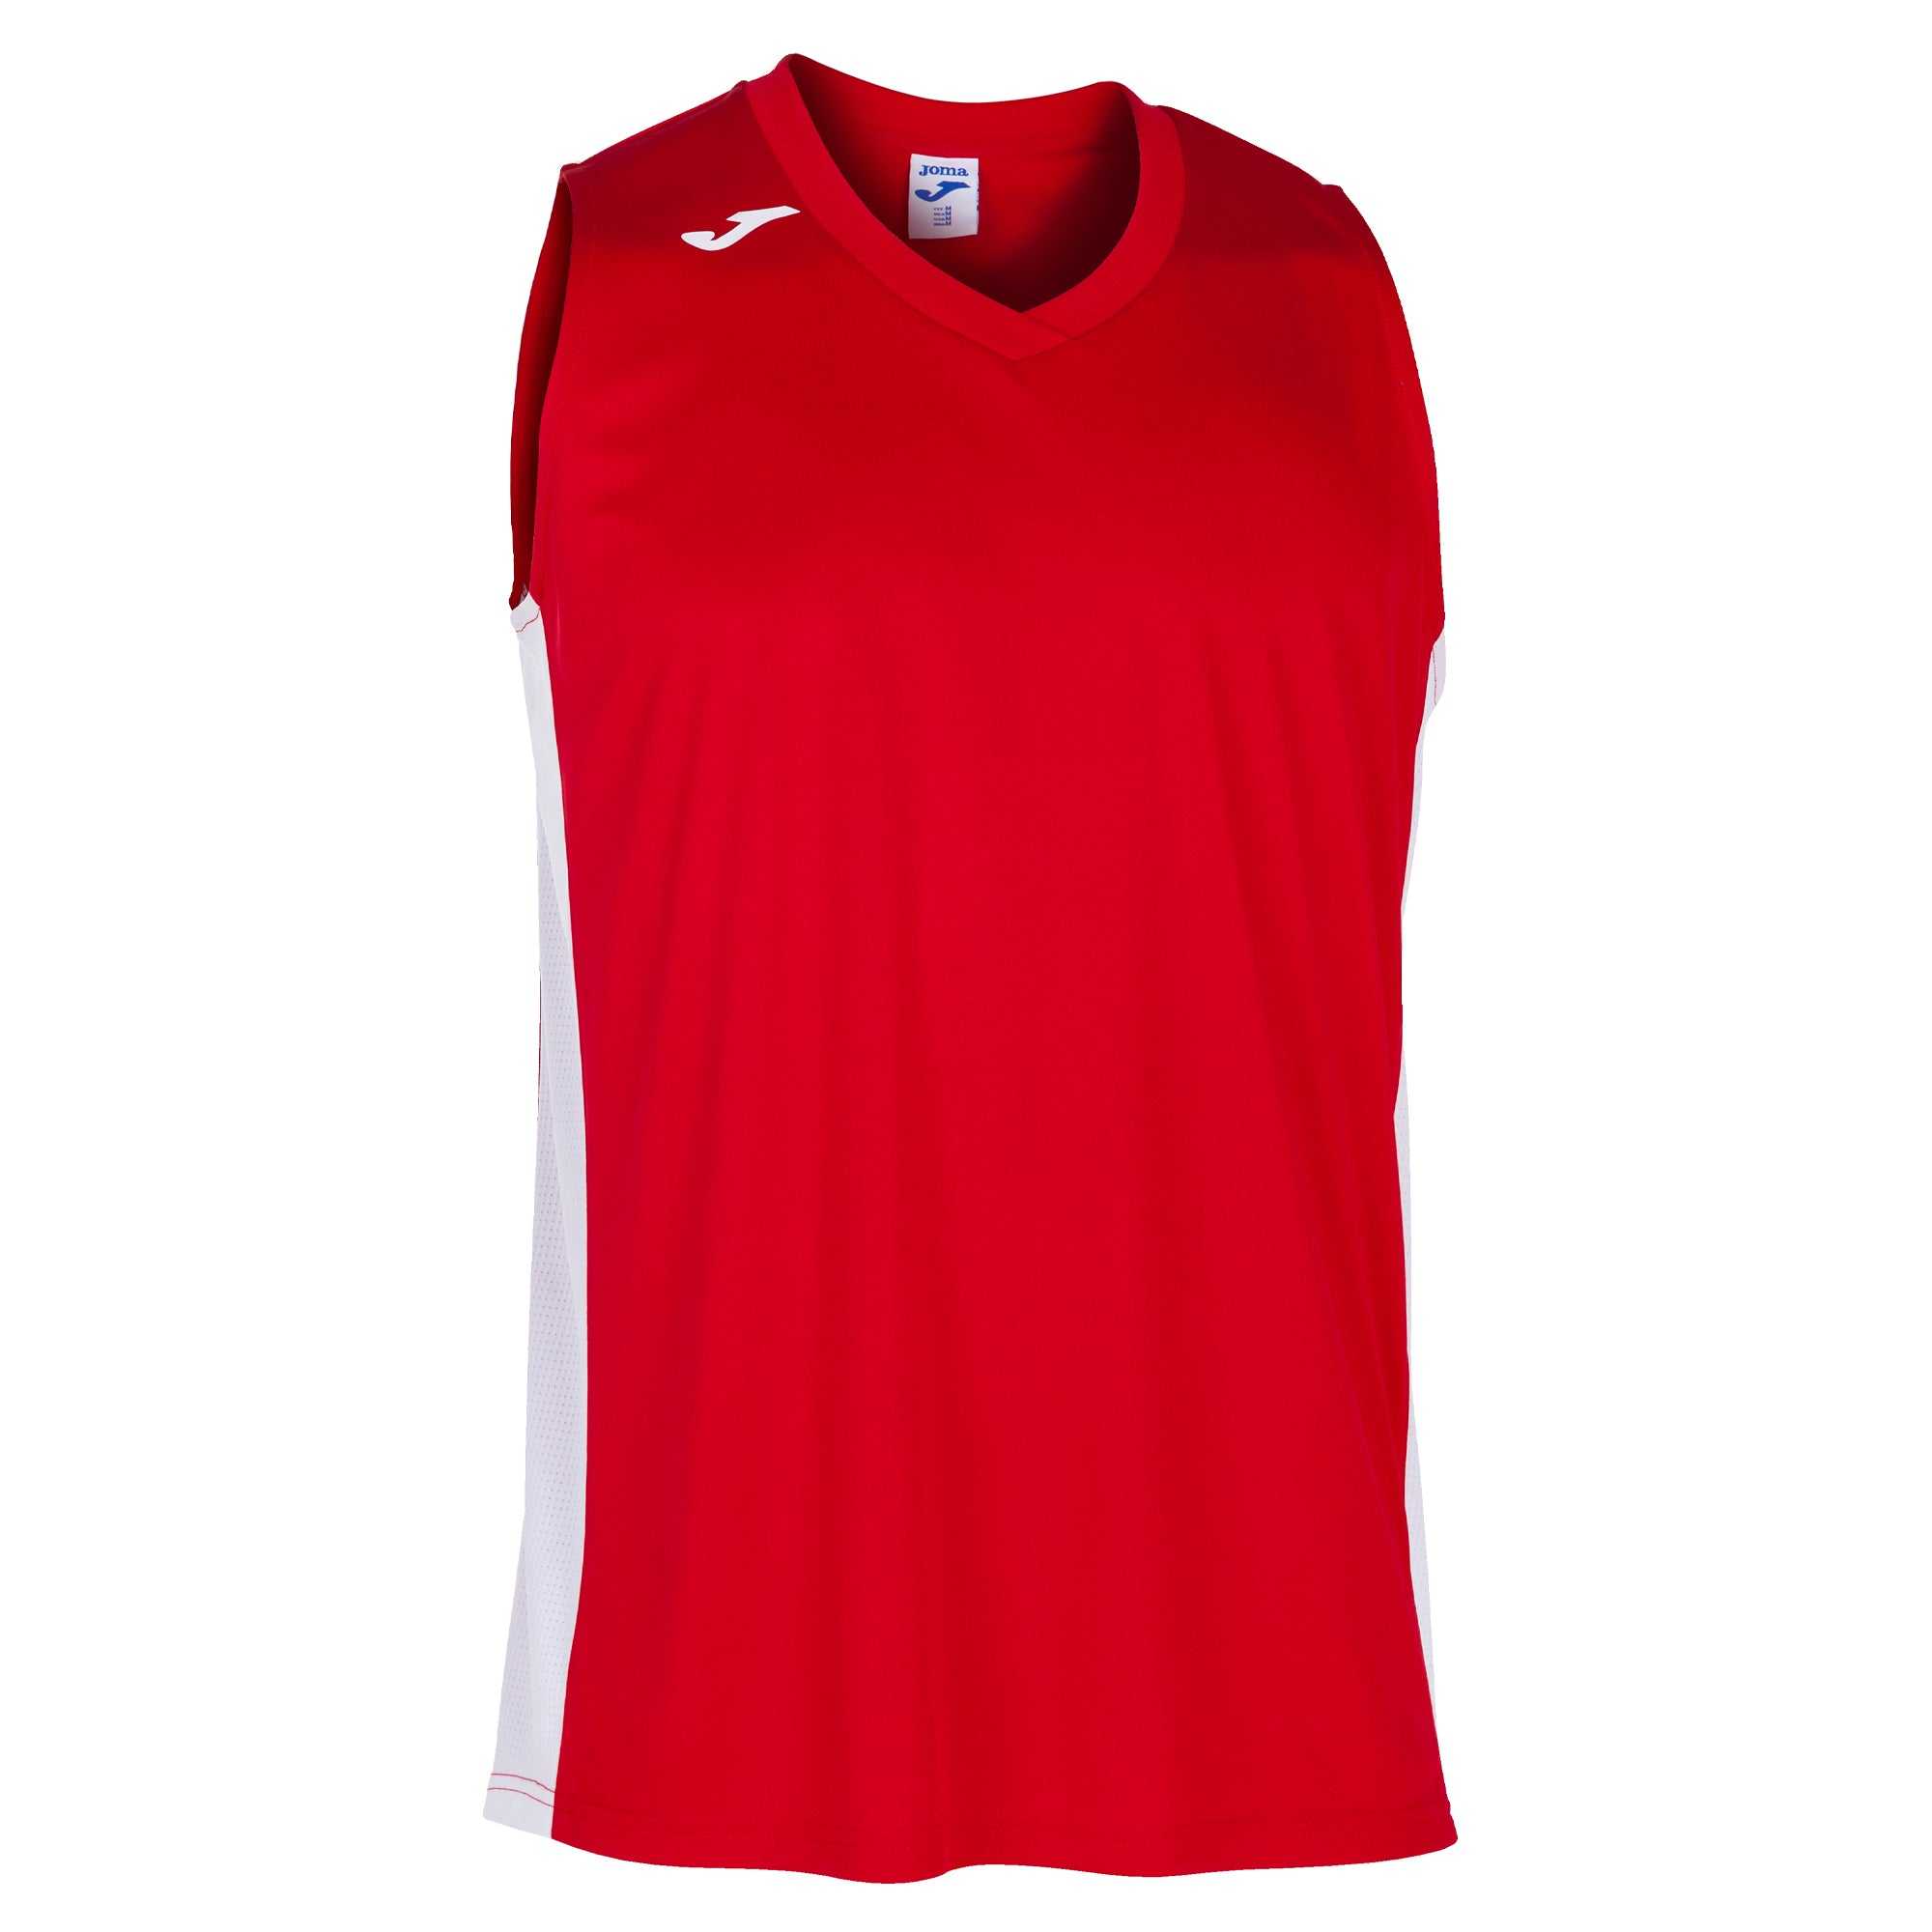 Teamwear - Joma Cancha III Sleeveless - Red/White - JO-101573-602